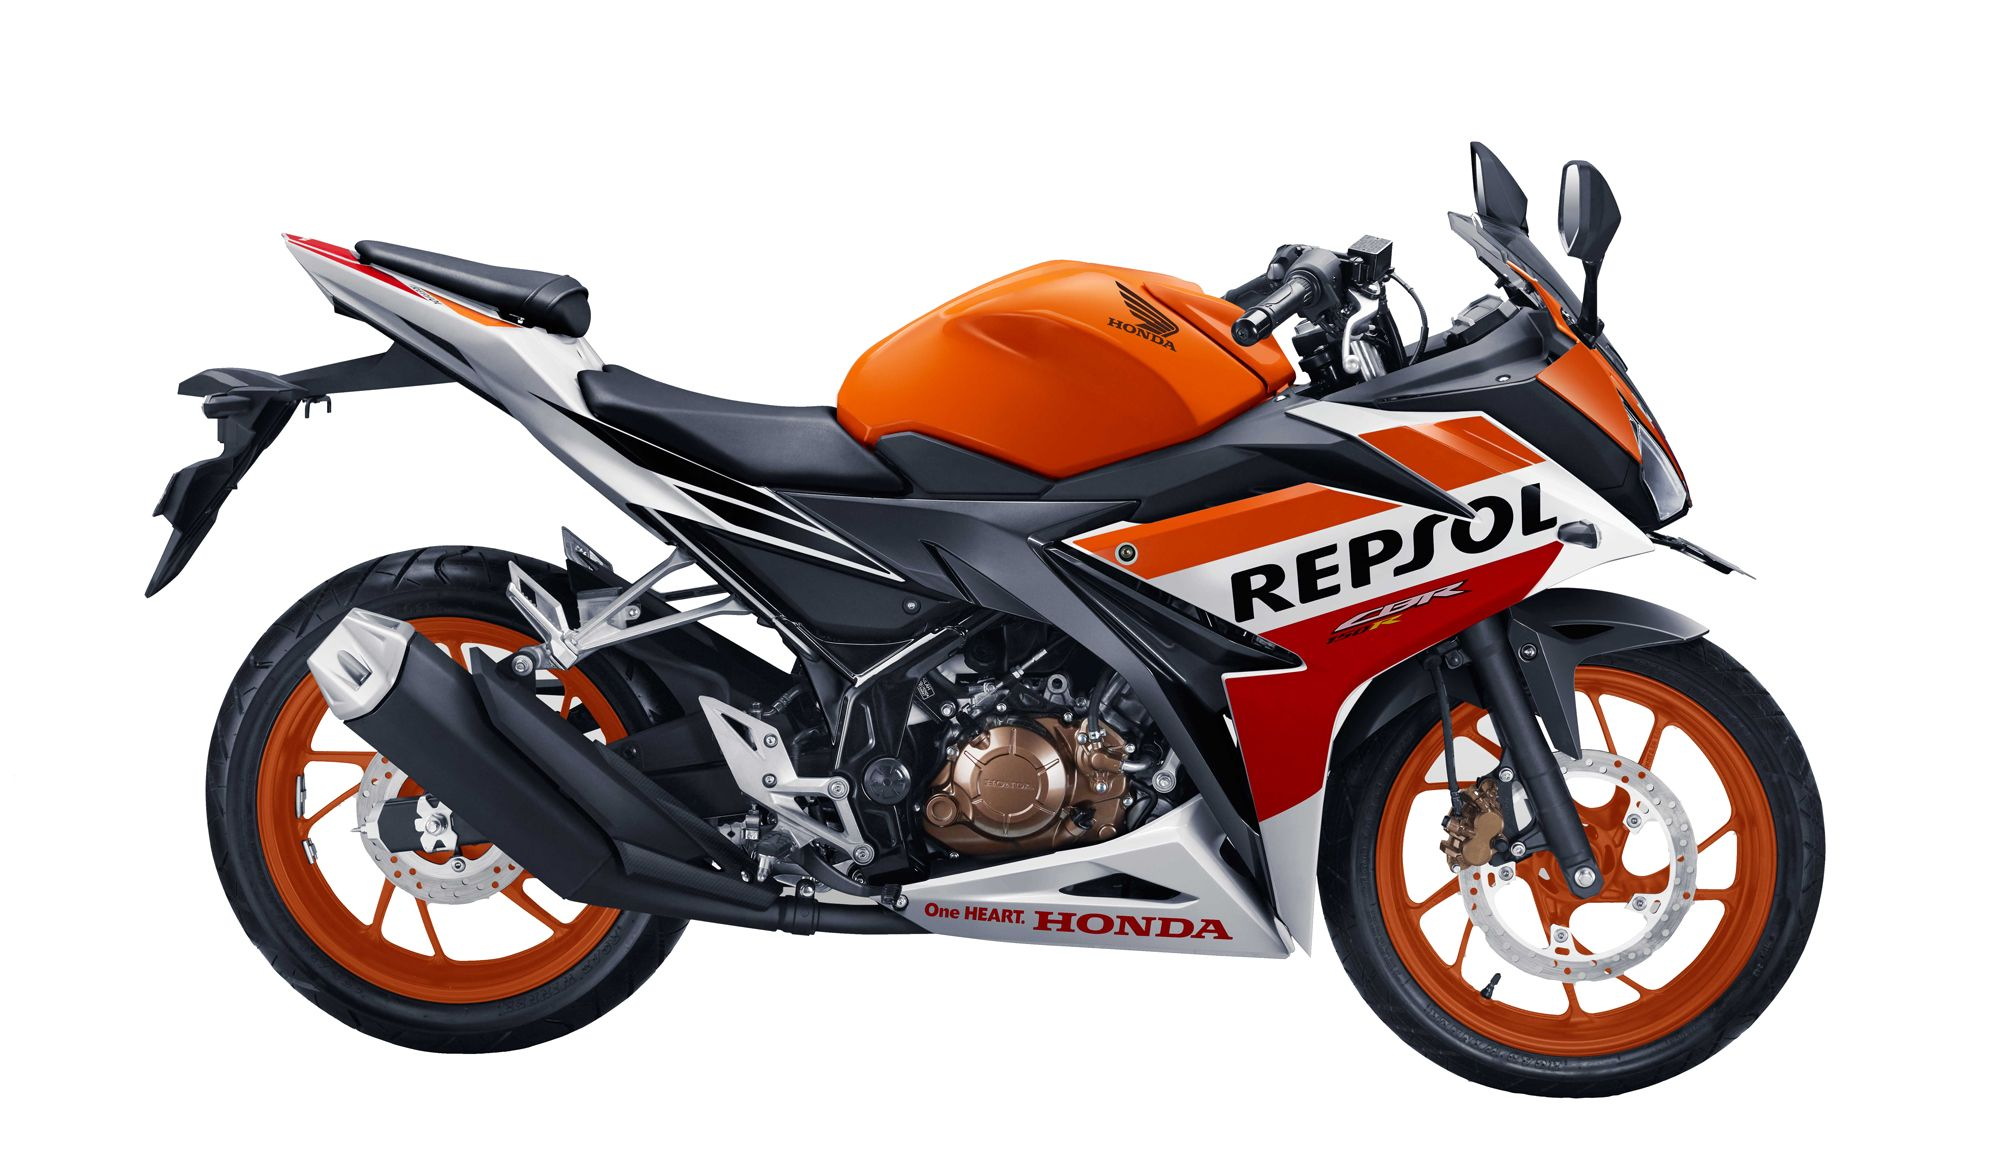 kredit motor honda cbr 150 repsol mmc cermati. Black Bedroom Furniture Sets. Home Design Ideas